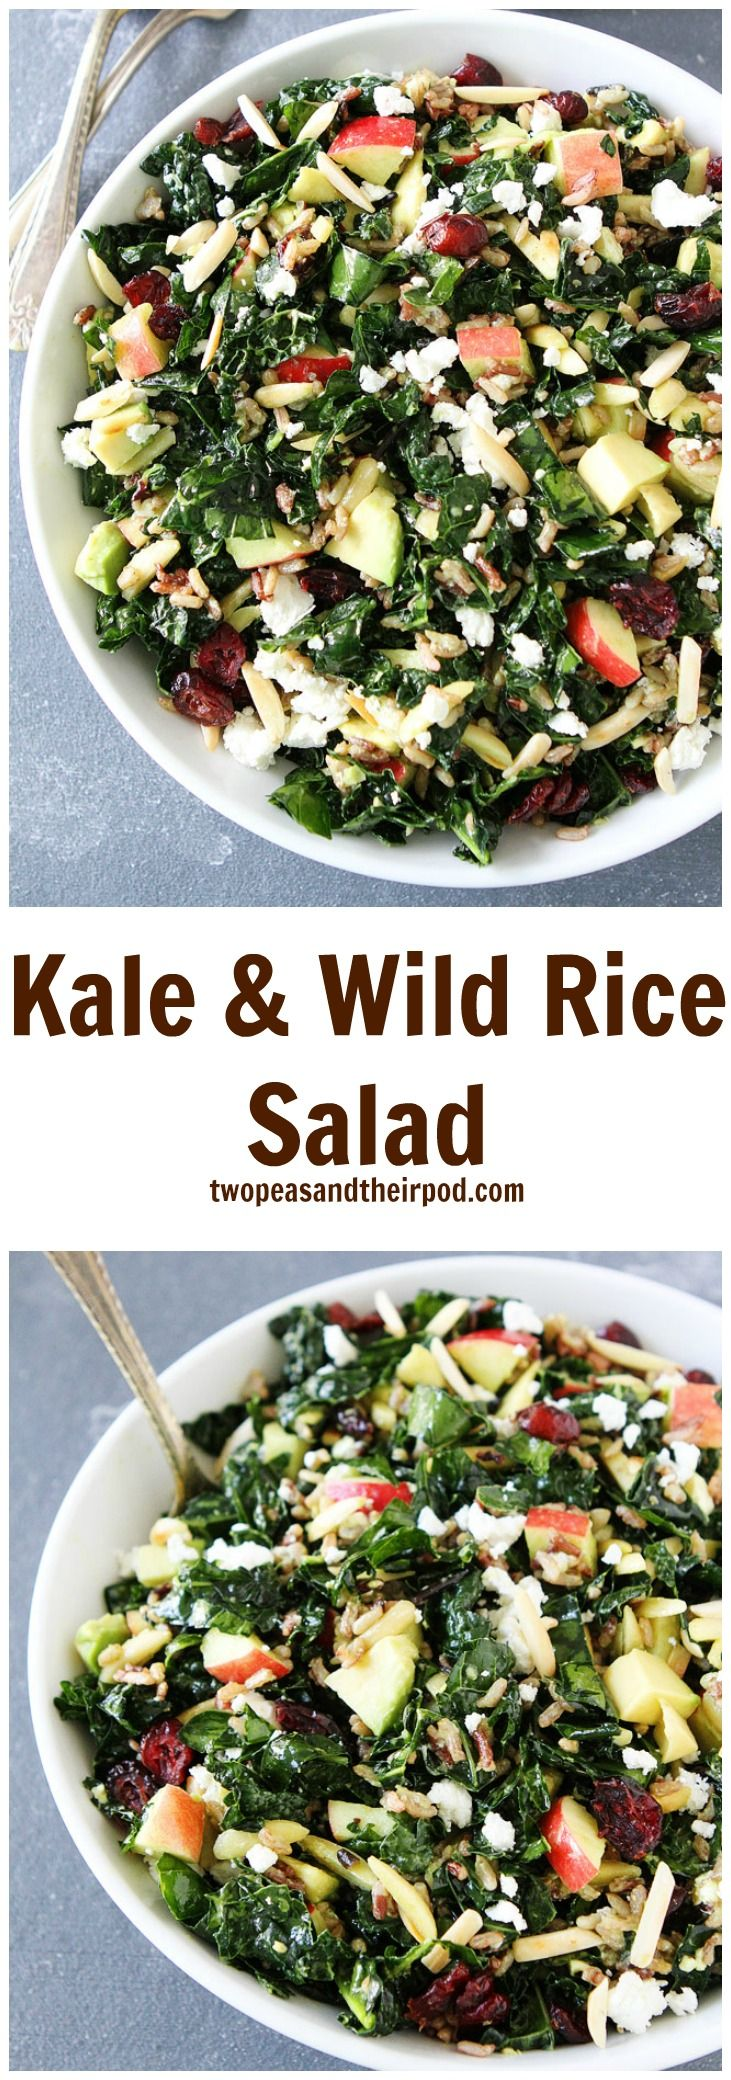 Kale and Wild Rice Salad Recipe on twopeasandtheirpod.com This kale salad is FULL of flavor! It has apples, dried cranberries, almonds, wild rice, goat cheese, avocado, and the BEST lemon basil dressing! Everyone that tries this salad LOVES it!